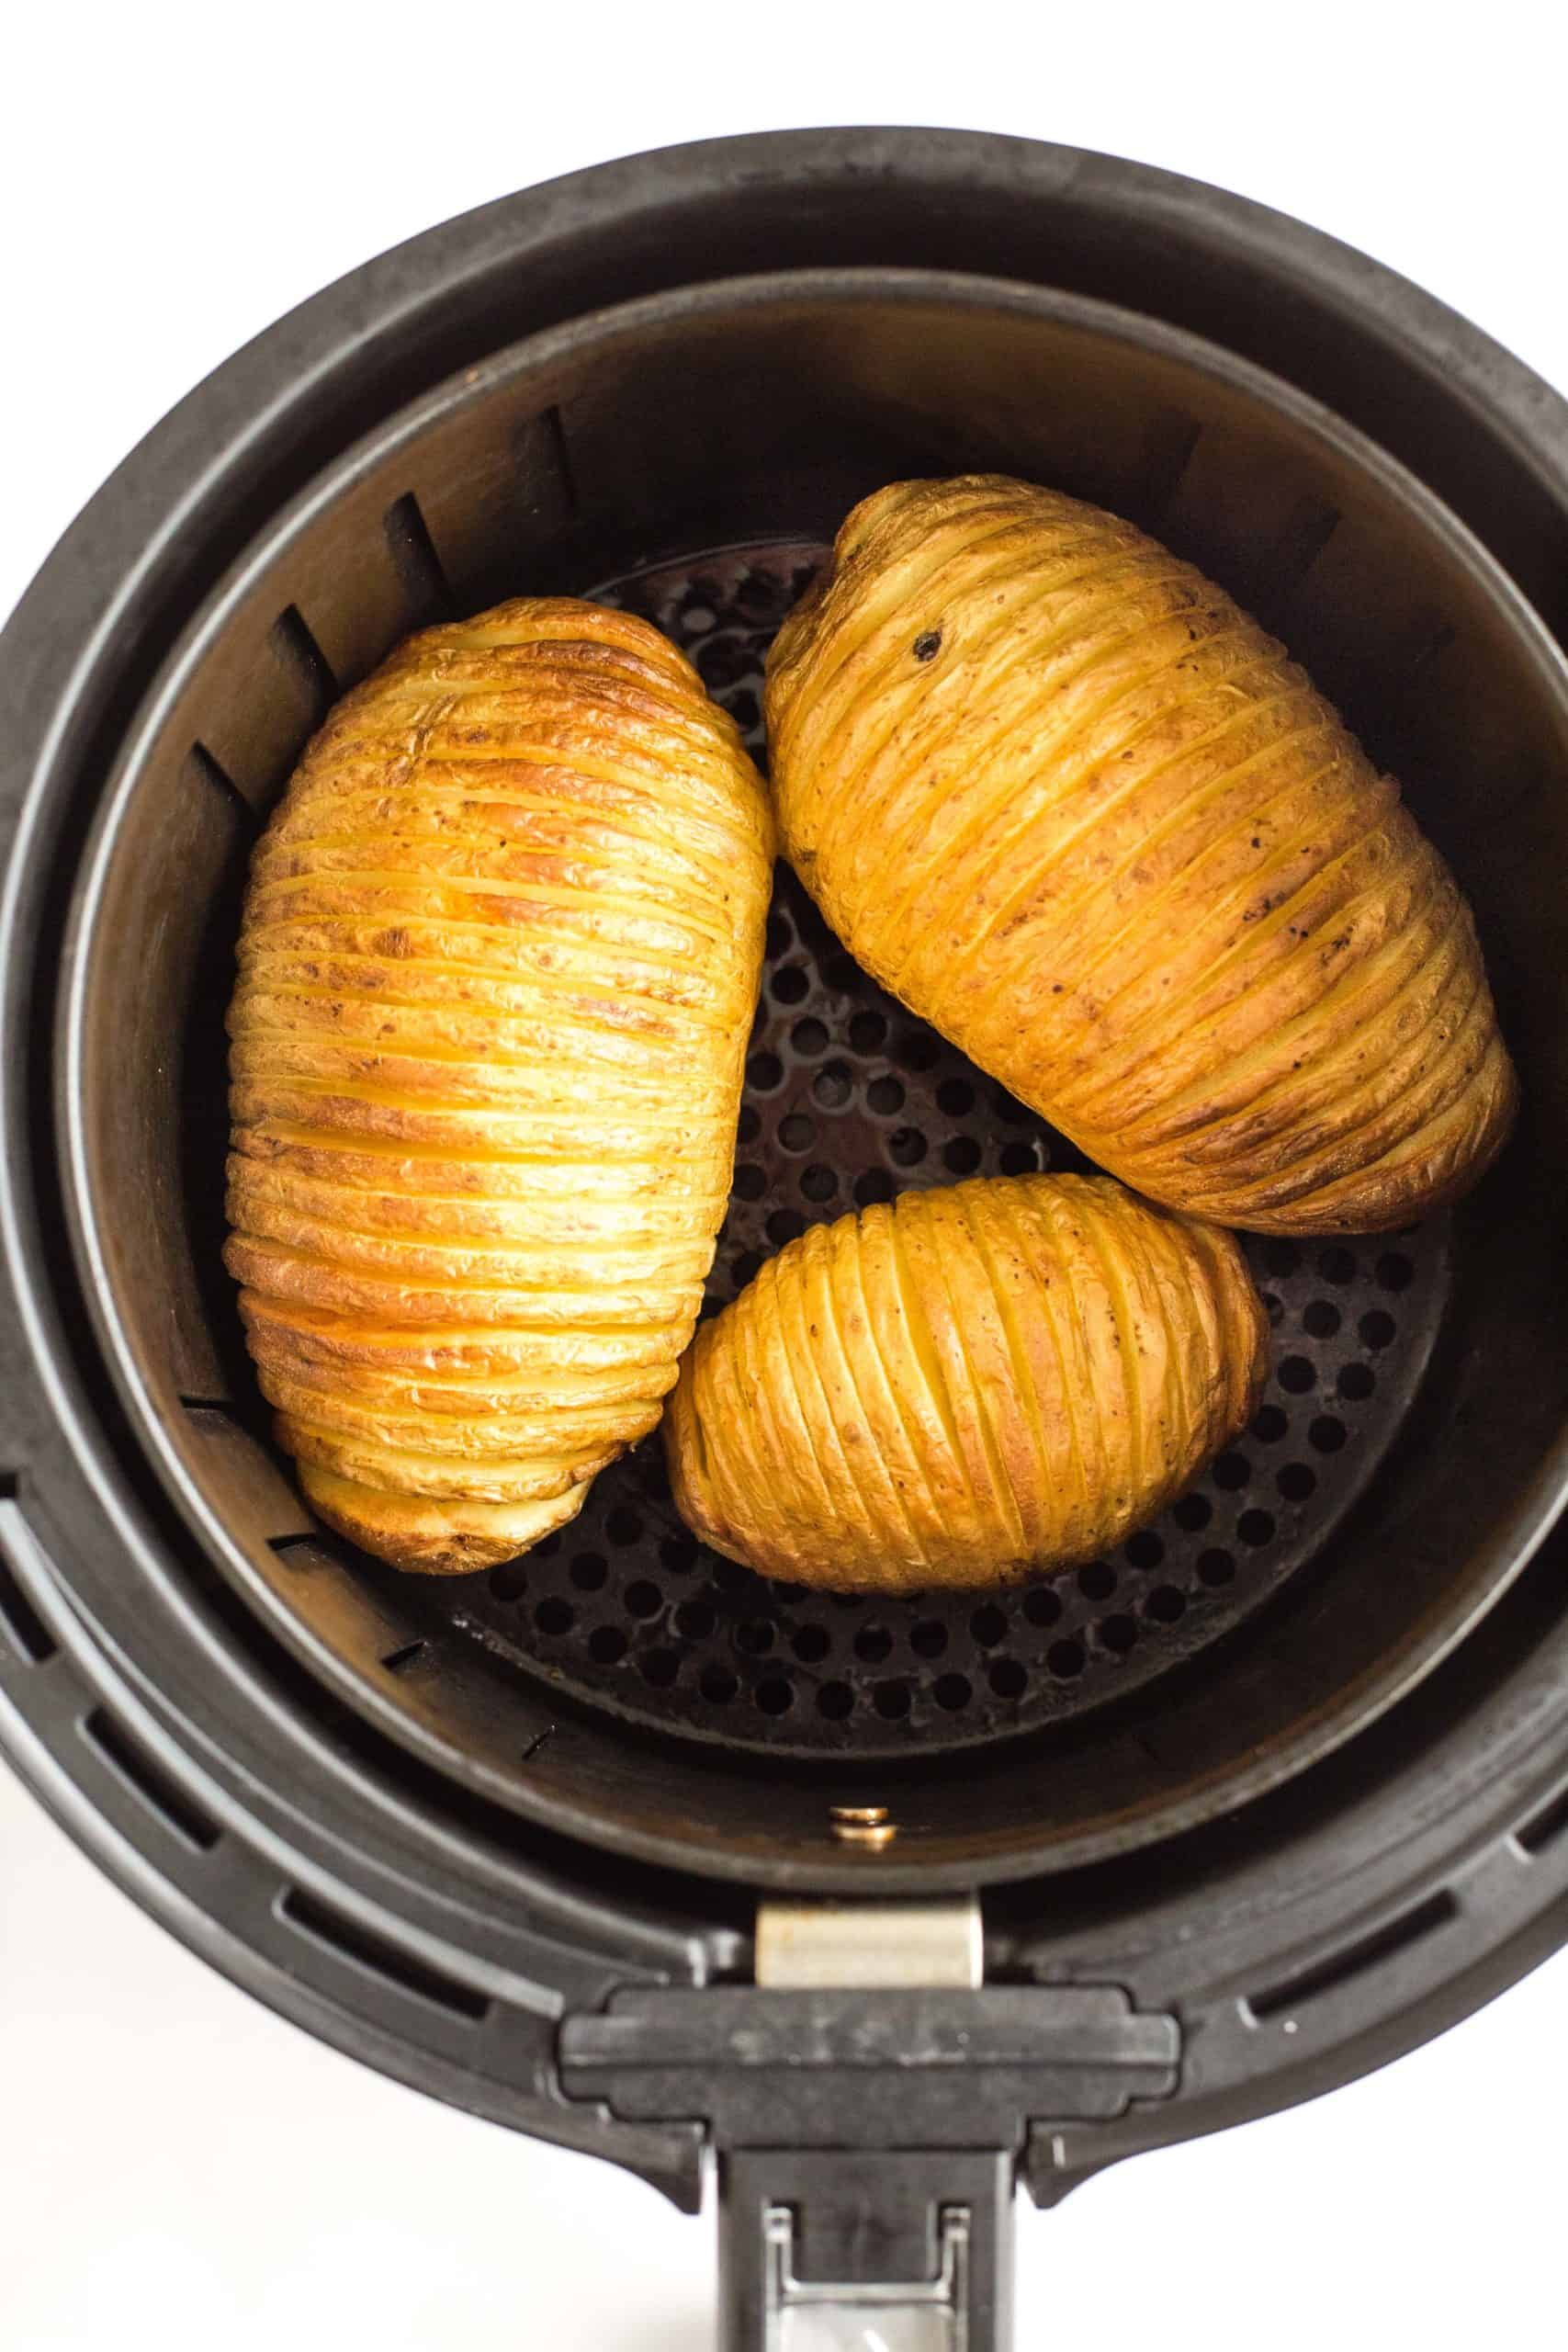 Crispy hasselback potatoes in the air fryer basket.